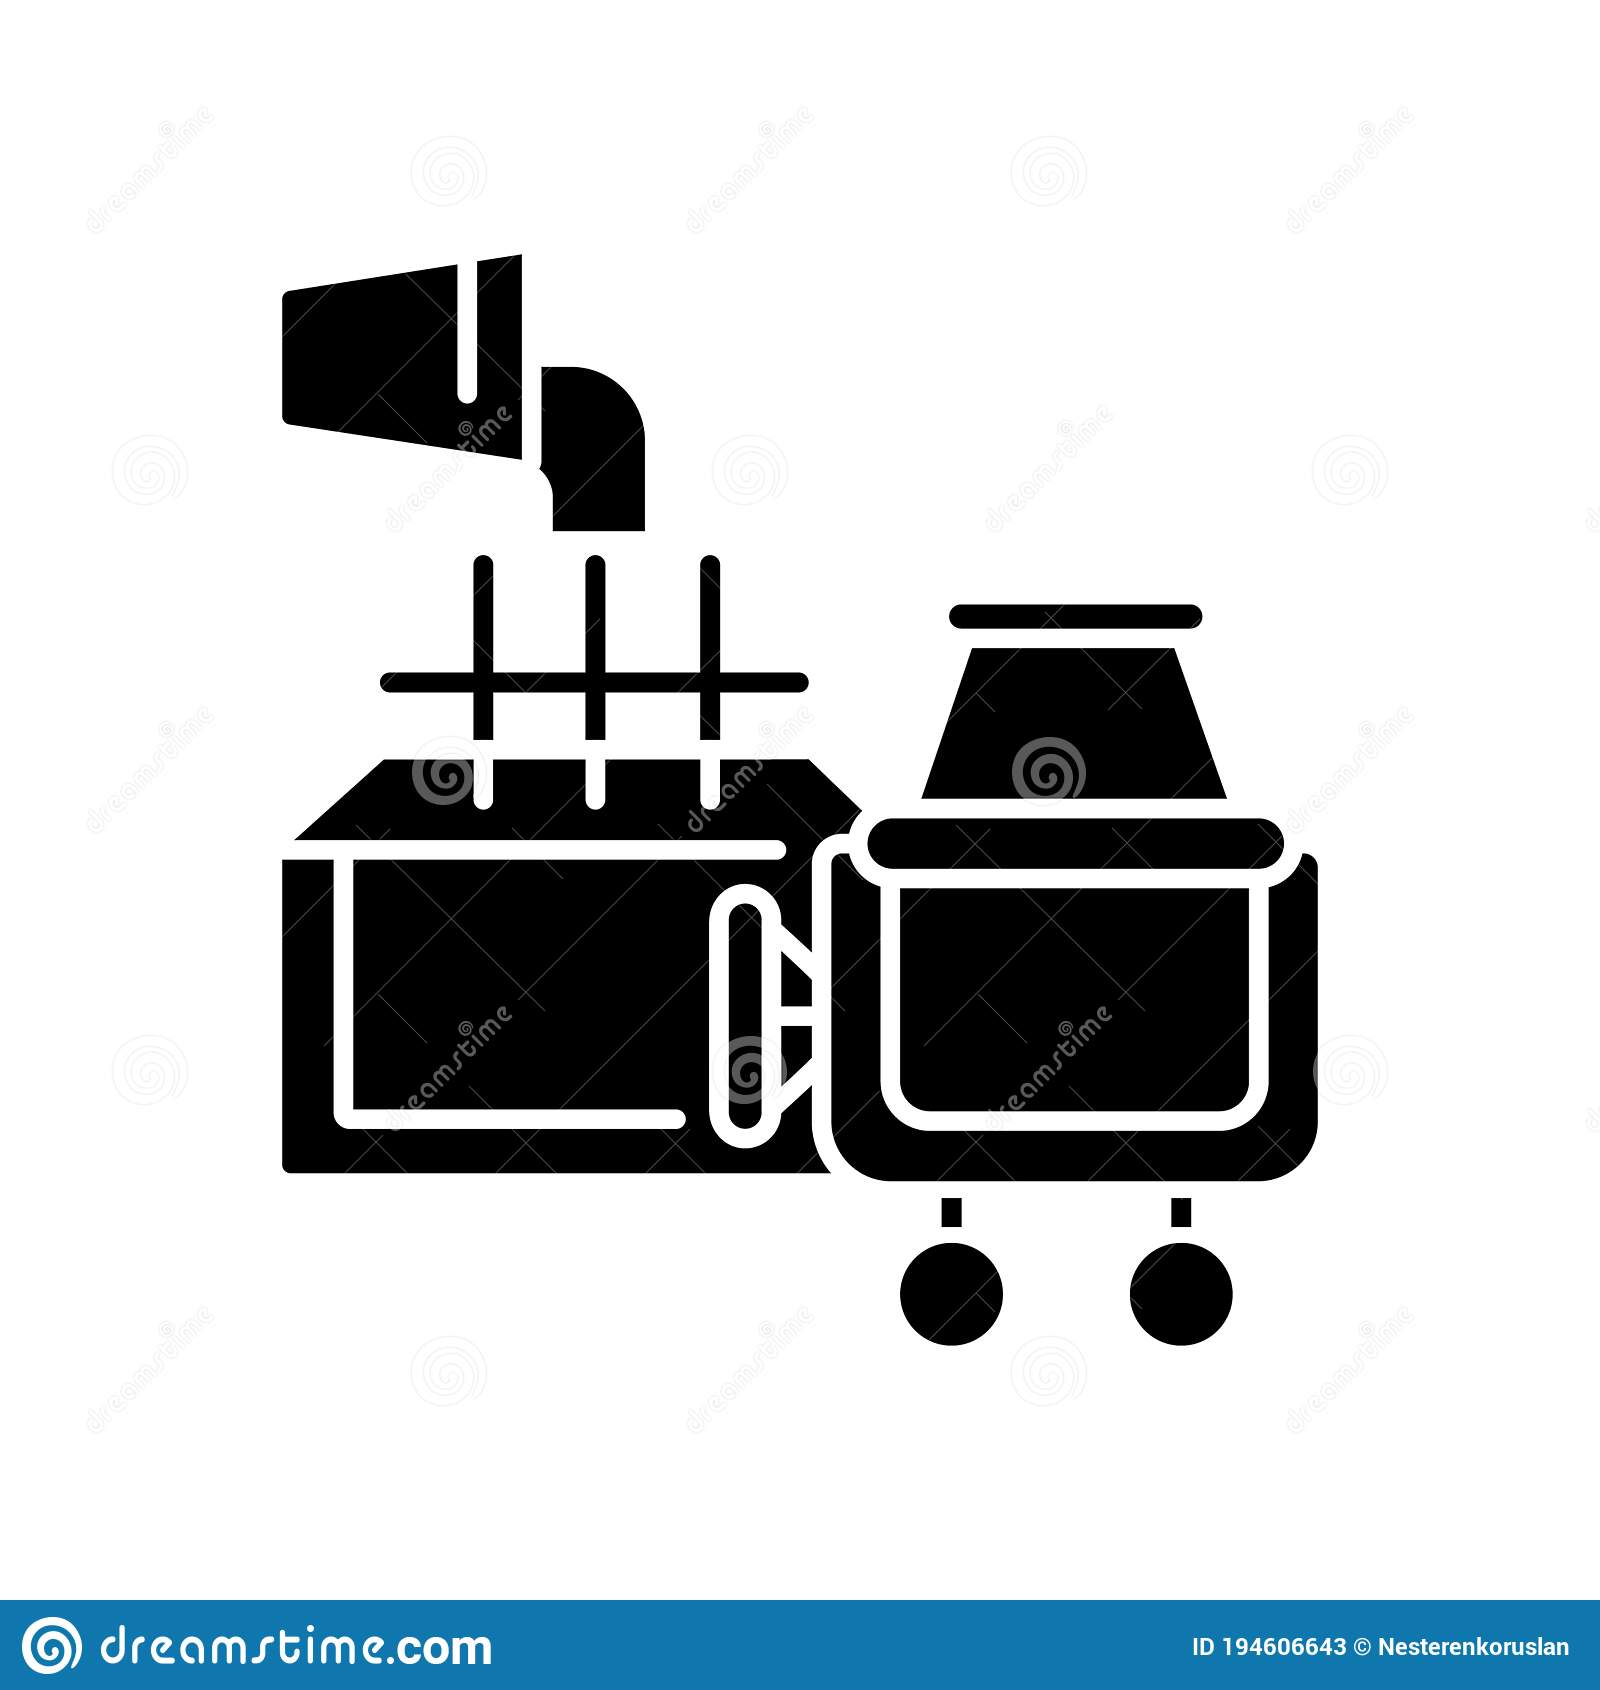 Laying Foundation Black Glyph Icon Stock Vector Illustration Of Foundation Block 194606643